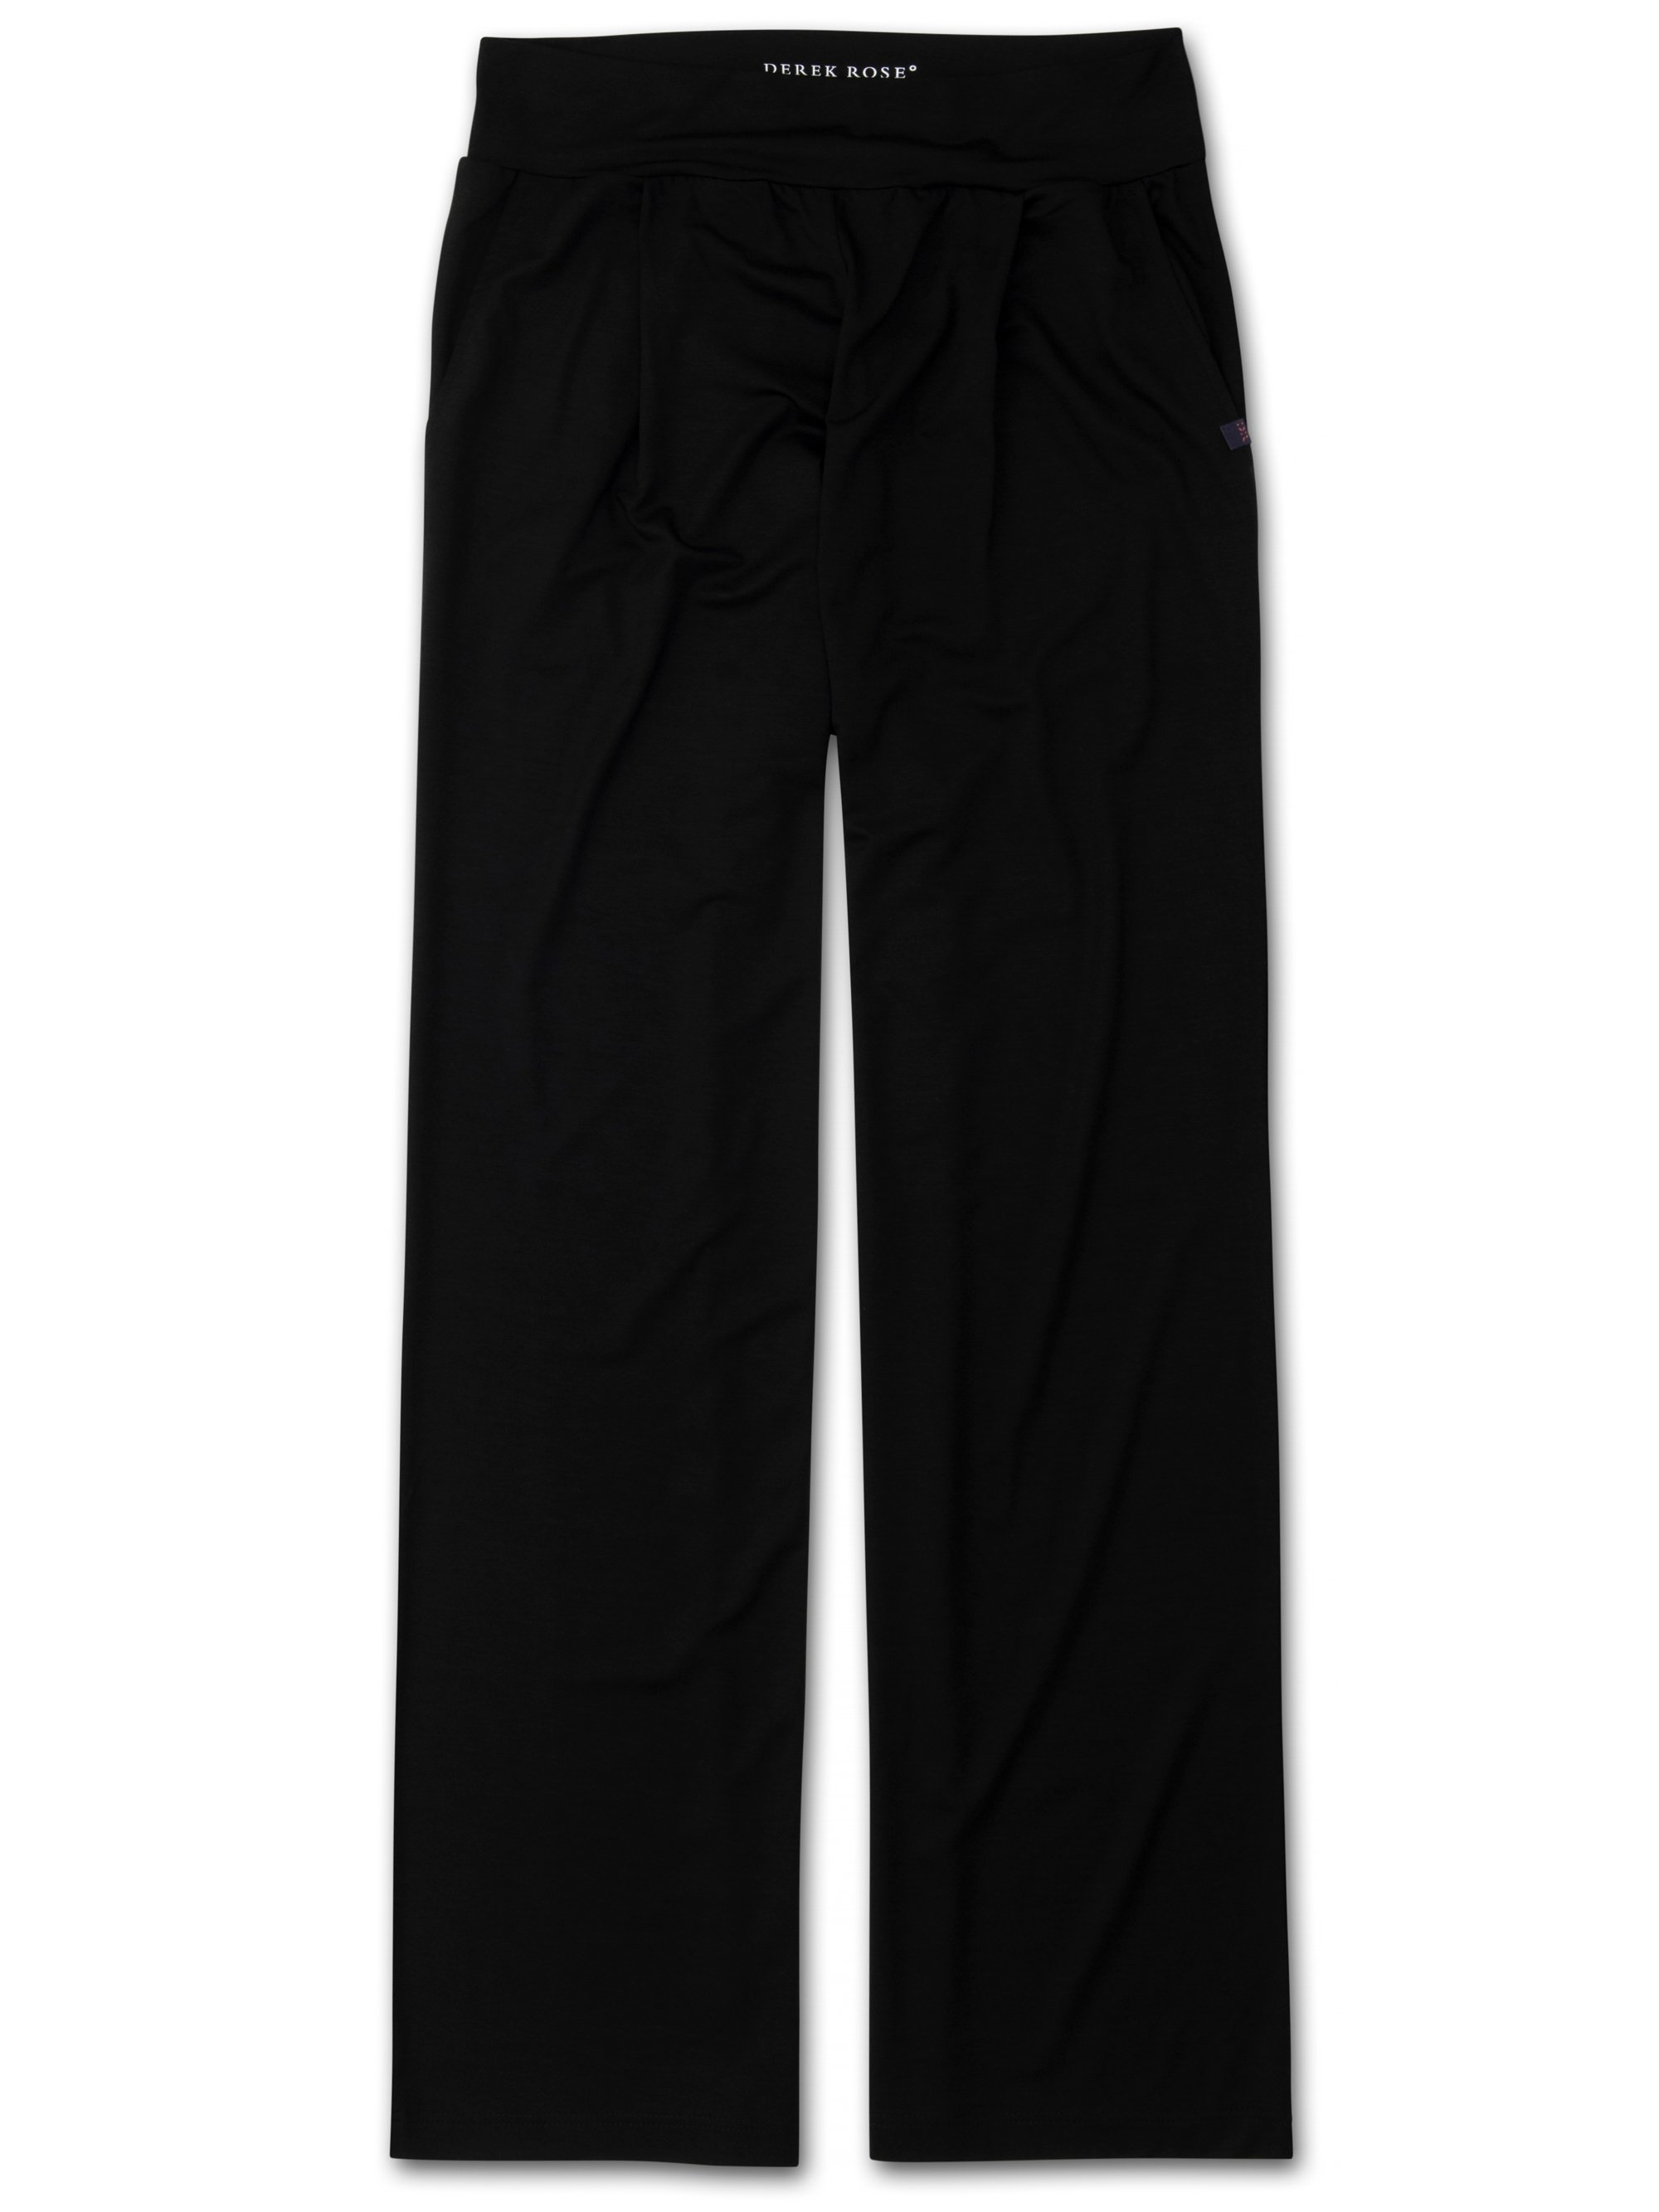 Women's Jersey Trousers Basel Micro Modal Stretch Black